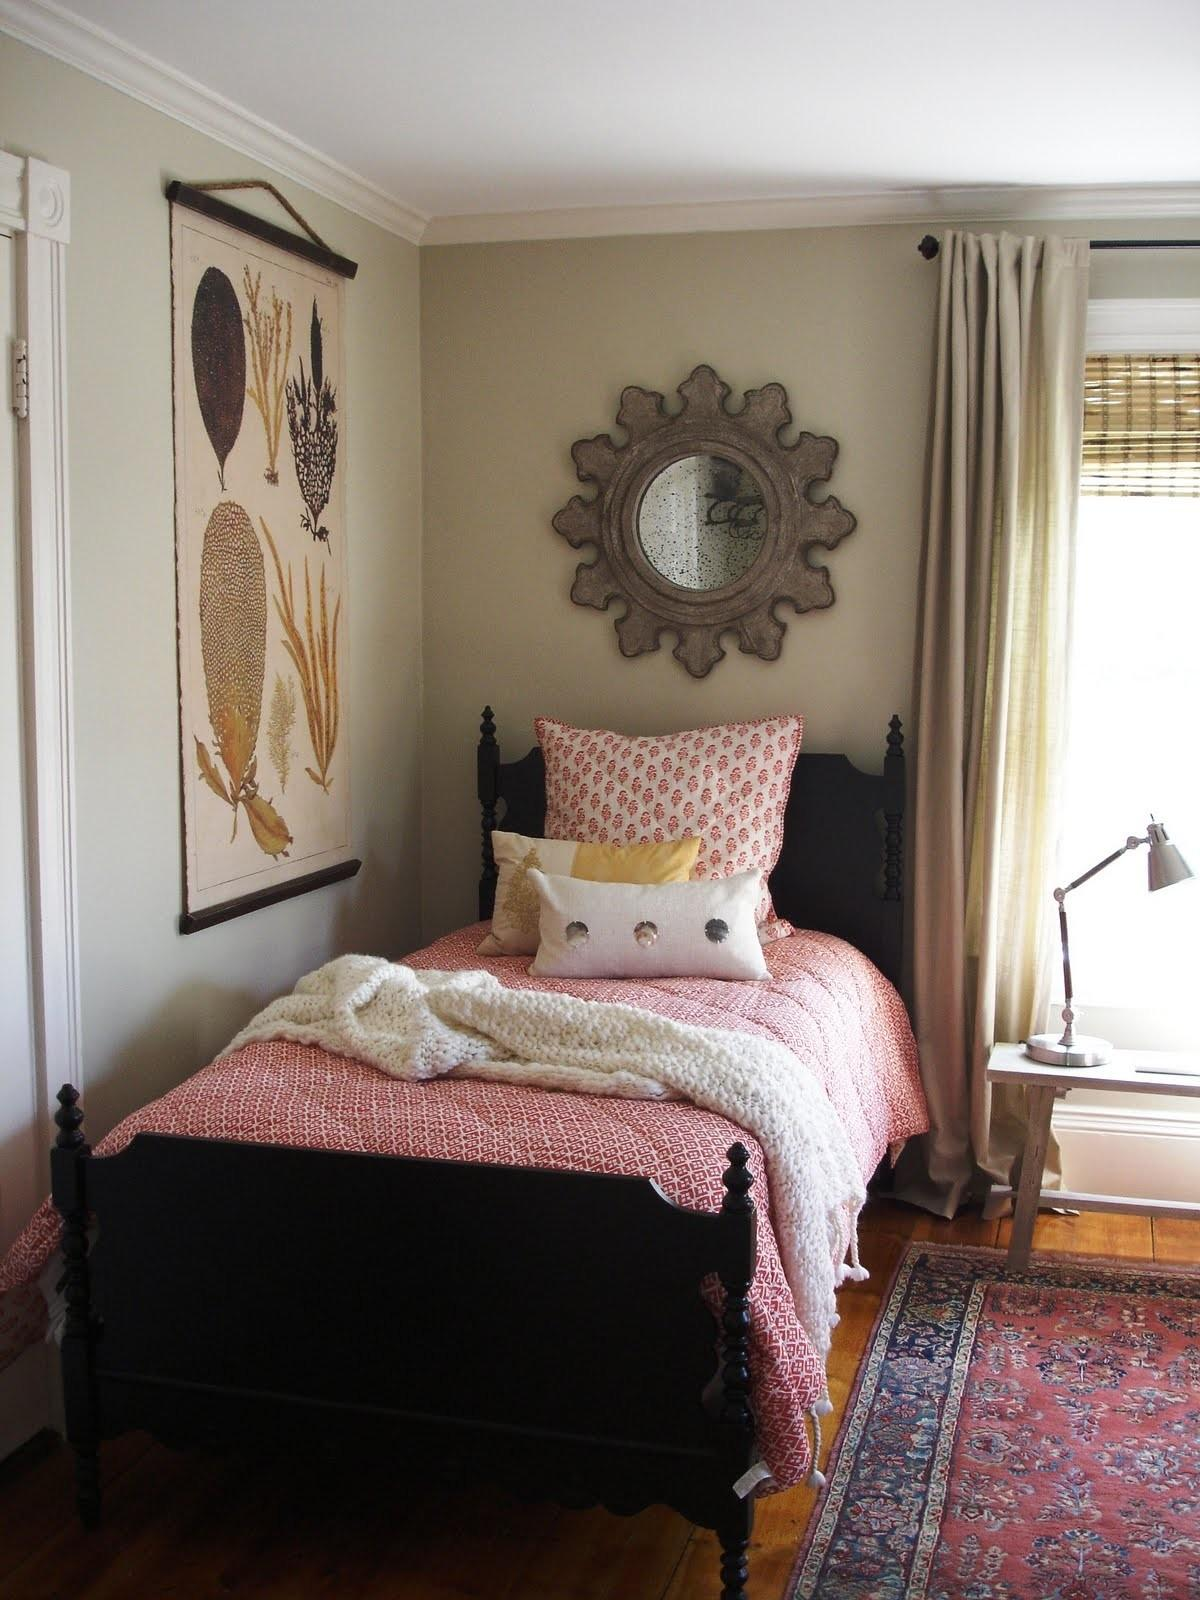 Guest Room Ideas Comfortable Small Spaces Designing